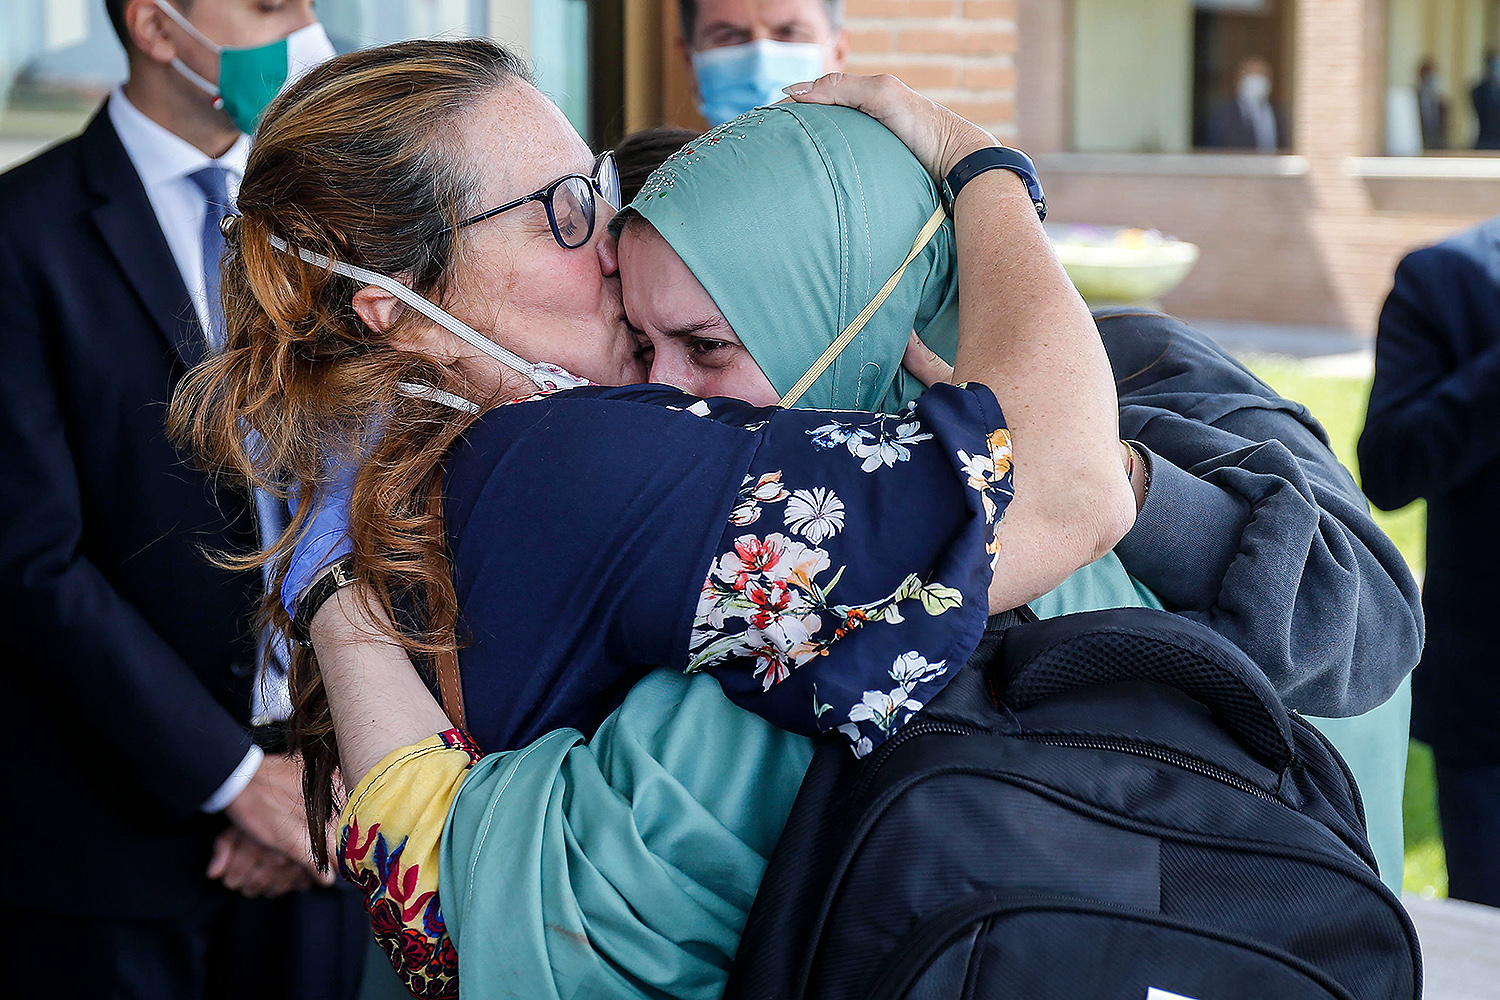 Italian volunteer aid worker Silvia Costanza Romano (right), who was kidnapped in Kenya in late 2018, embraces her mother, Francesca, upon her arrival at Rome's military airport Ciampino on May 11. FABIO FRUSTACI/ANSA/AFP via Getty Images